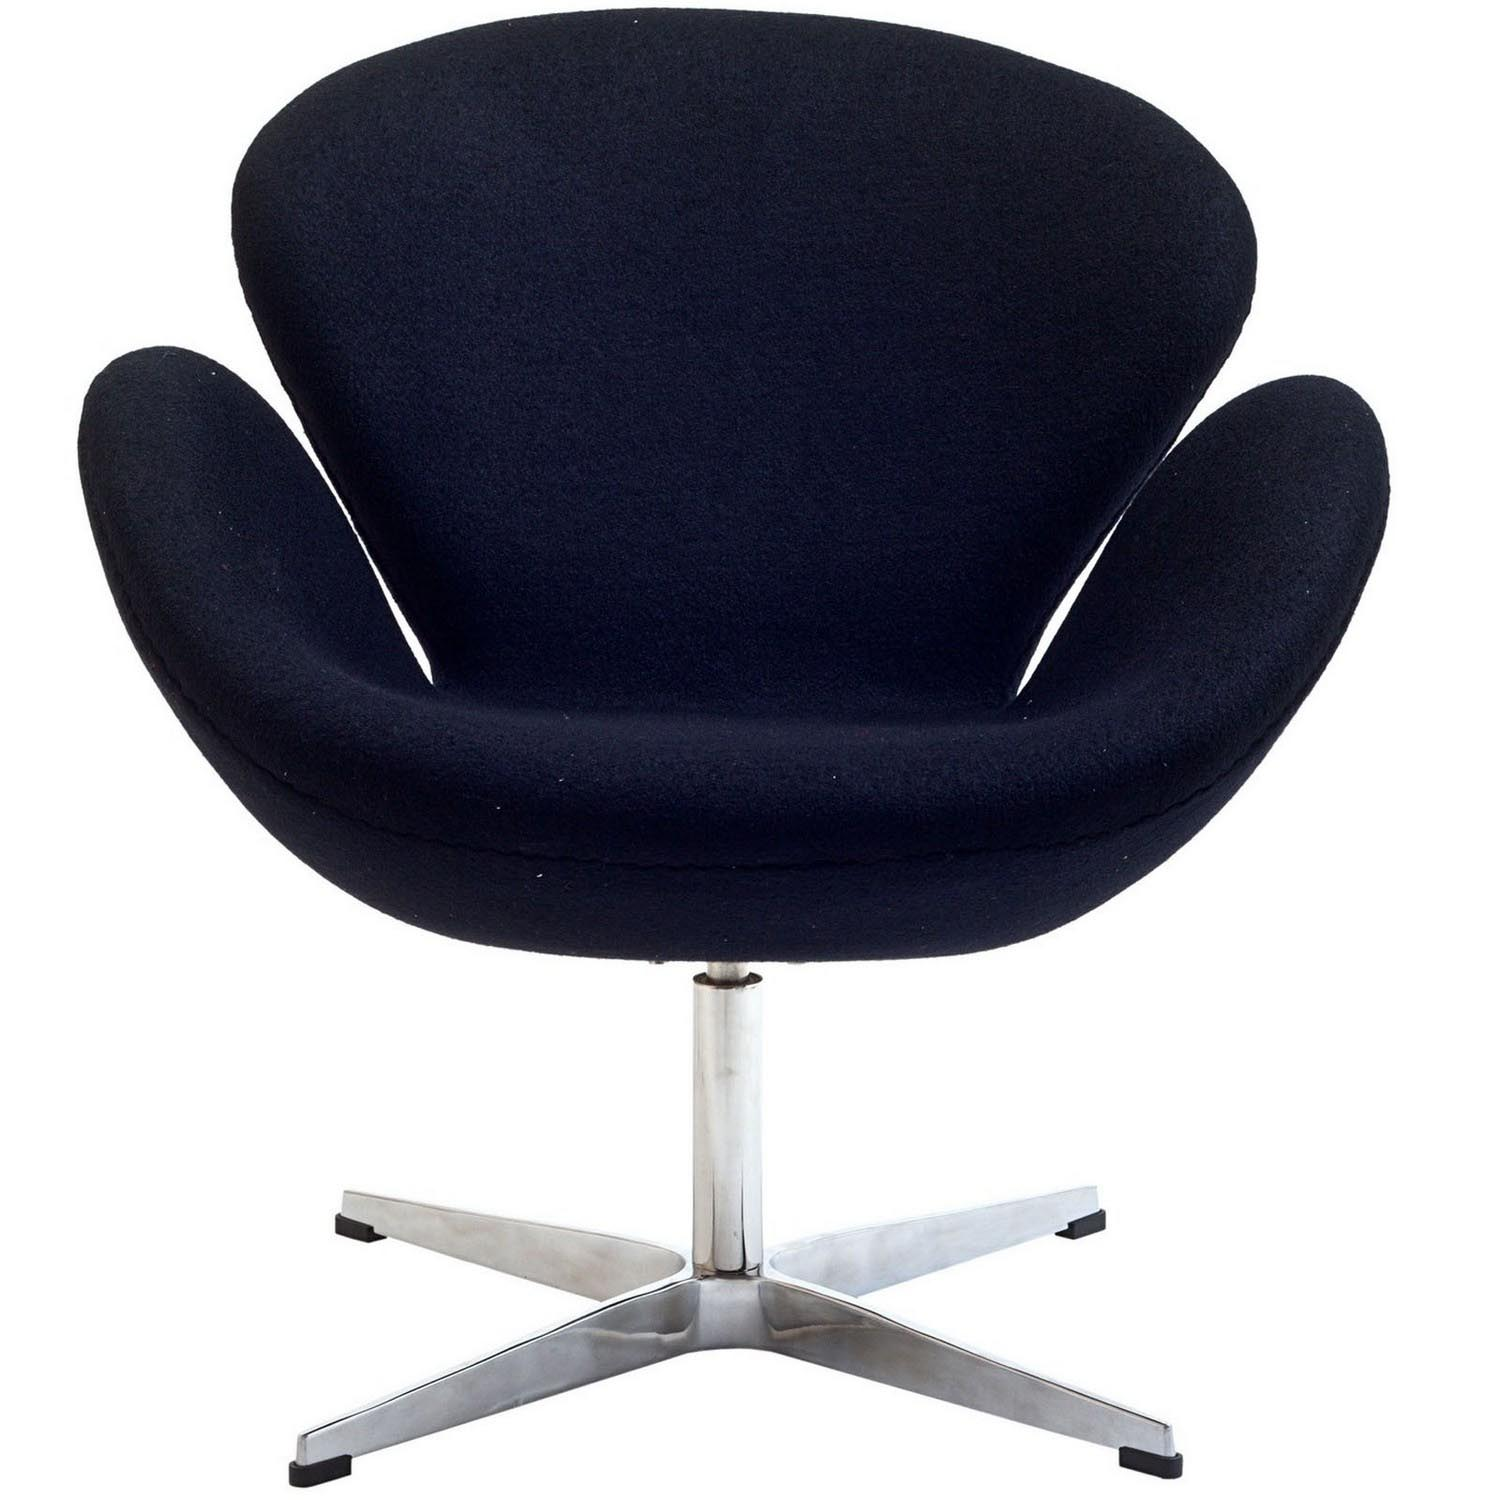 Modway Wing Lounge Chair - Black